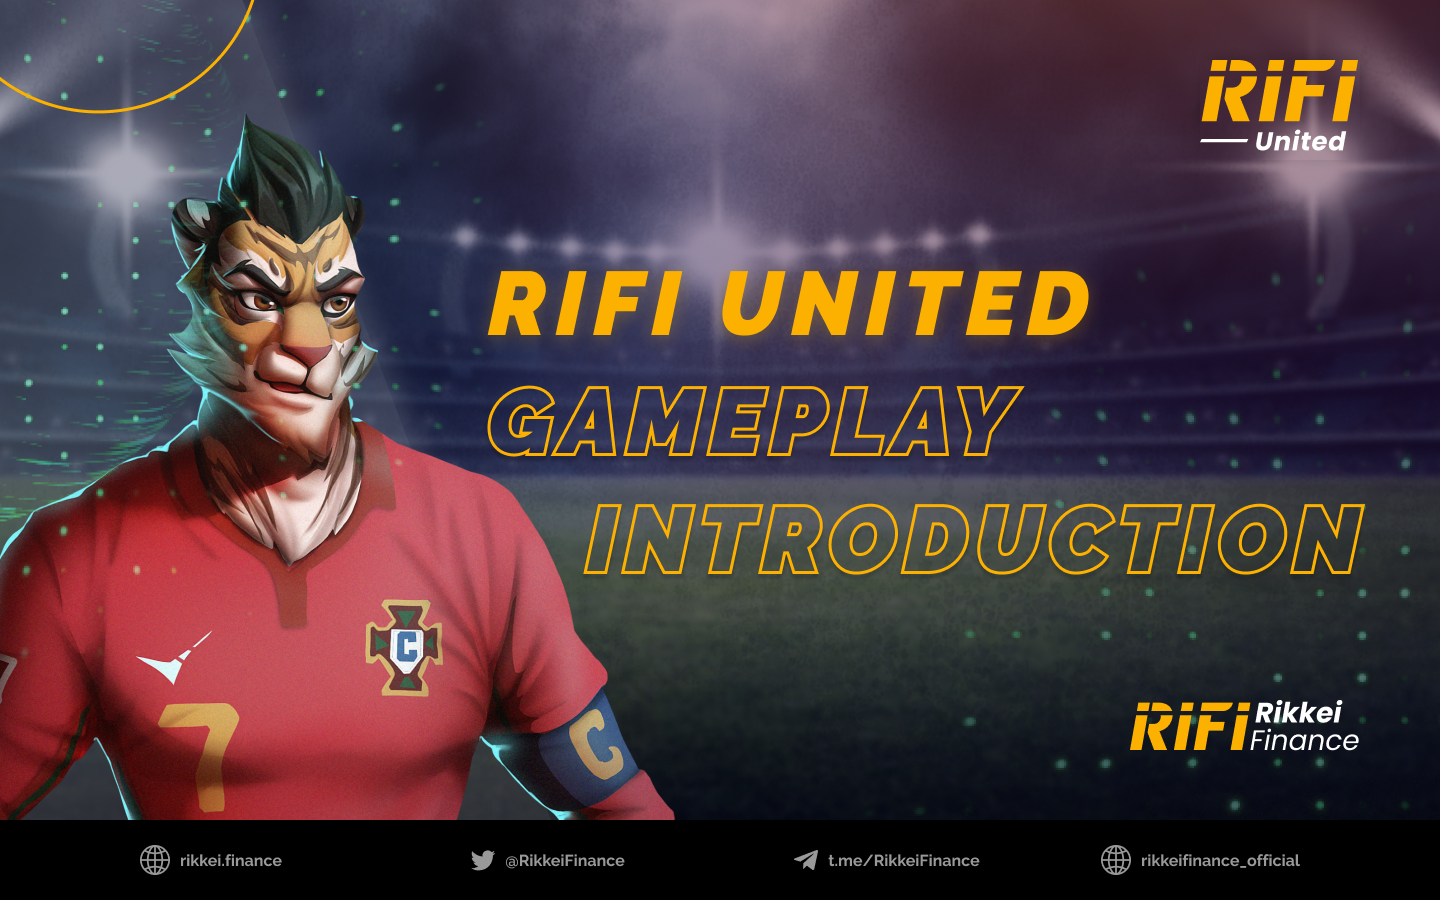 RIFI United P2E Gameplay to be Introduced